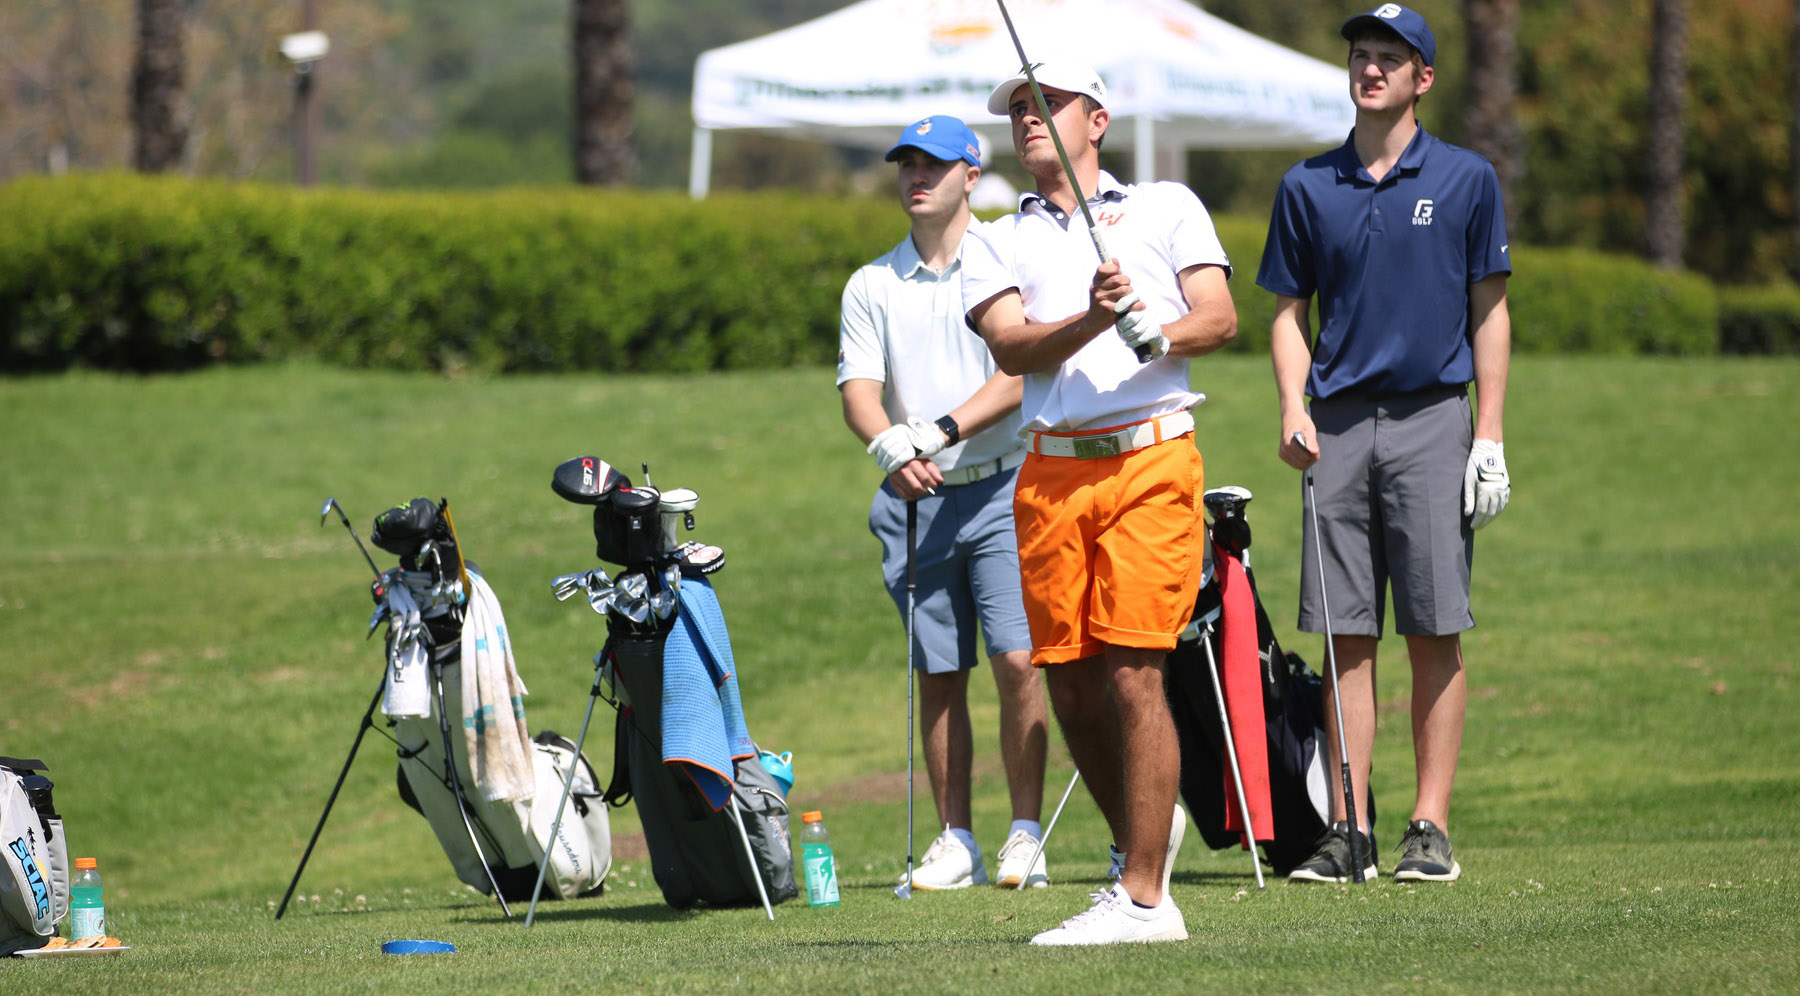 No. 11 Men's Golf takes 3rd at West Cup